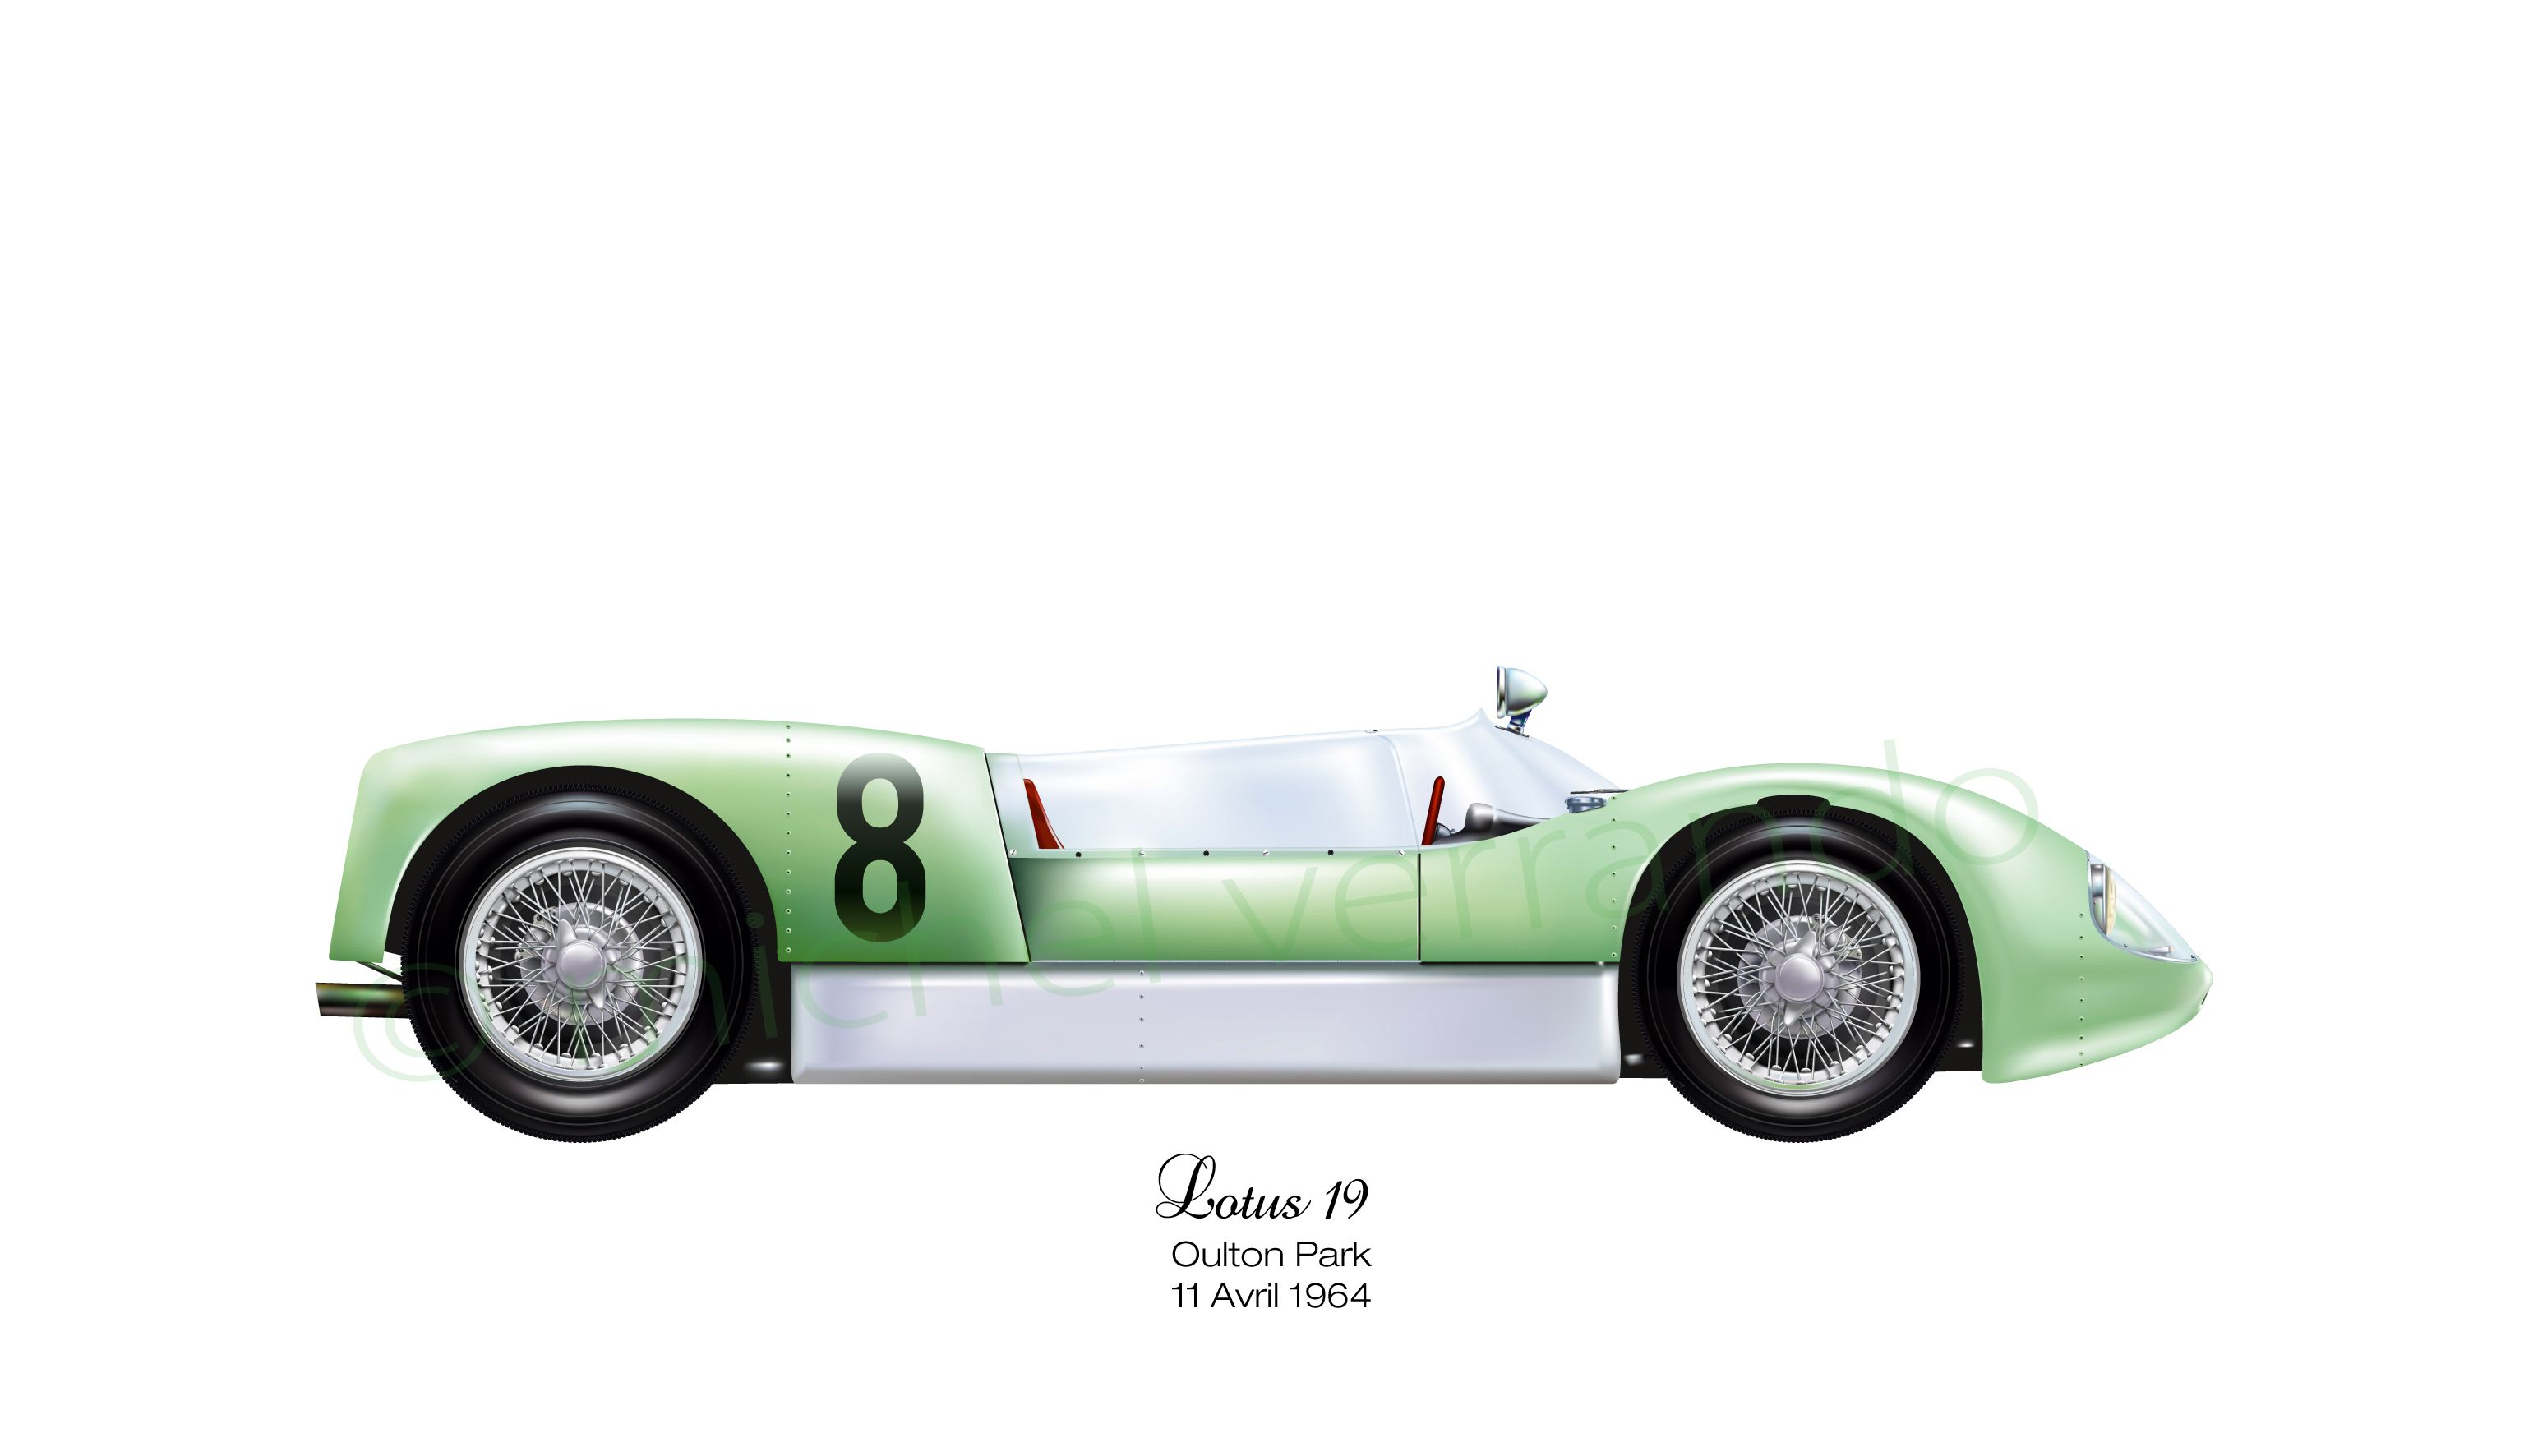 lotus 19 oulton park 1964 cars pinterest dessin. Black Bedroom Furniture Sets. Home Design Ideas